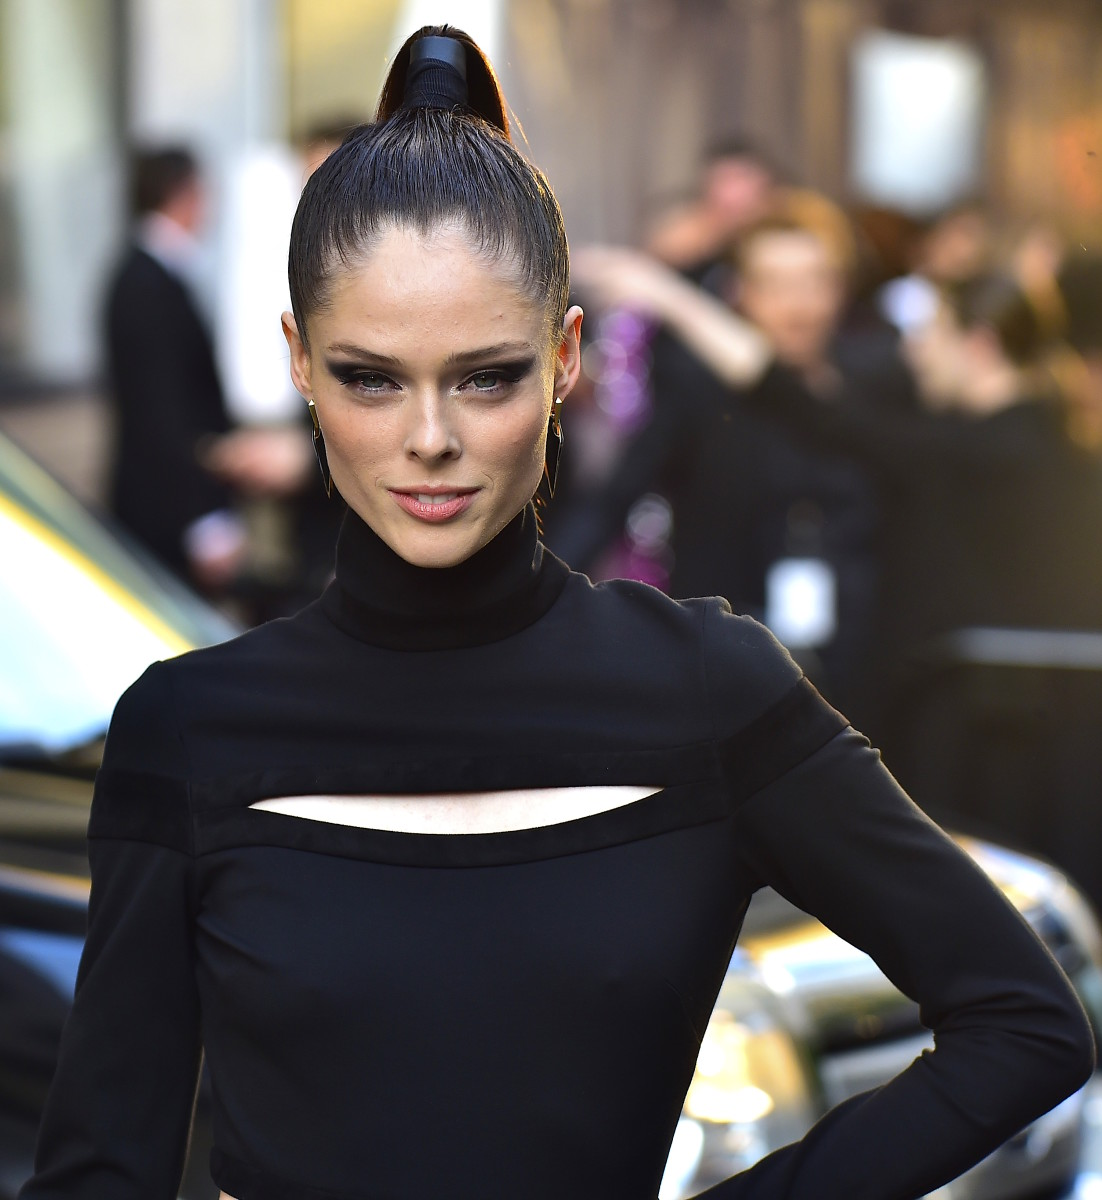 Coco Rocha at the 2016 CFDA Awards. Photo: Getty Images